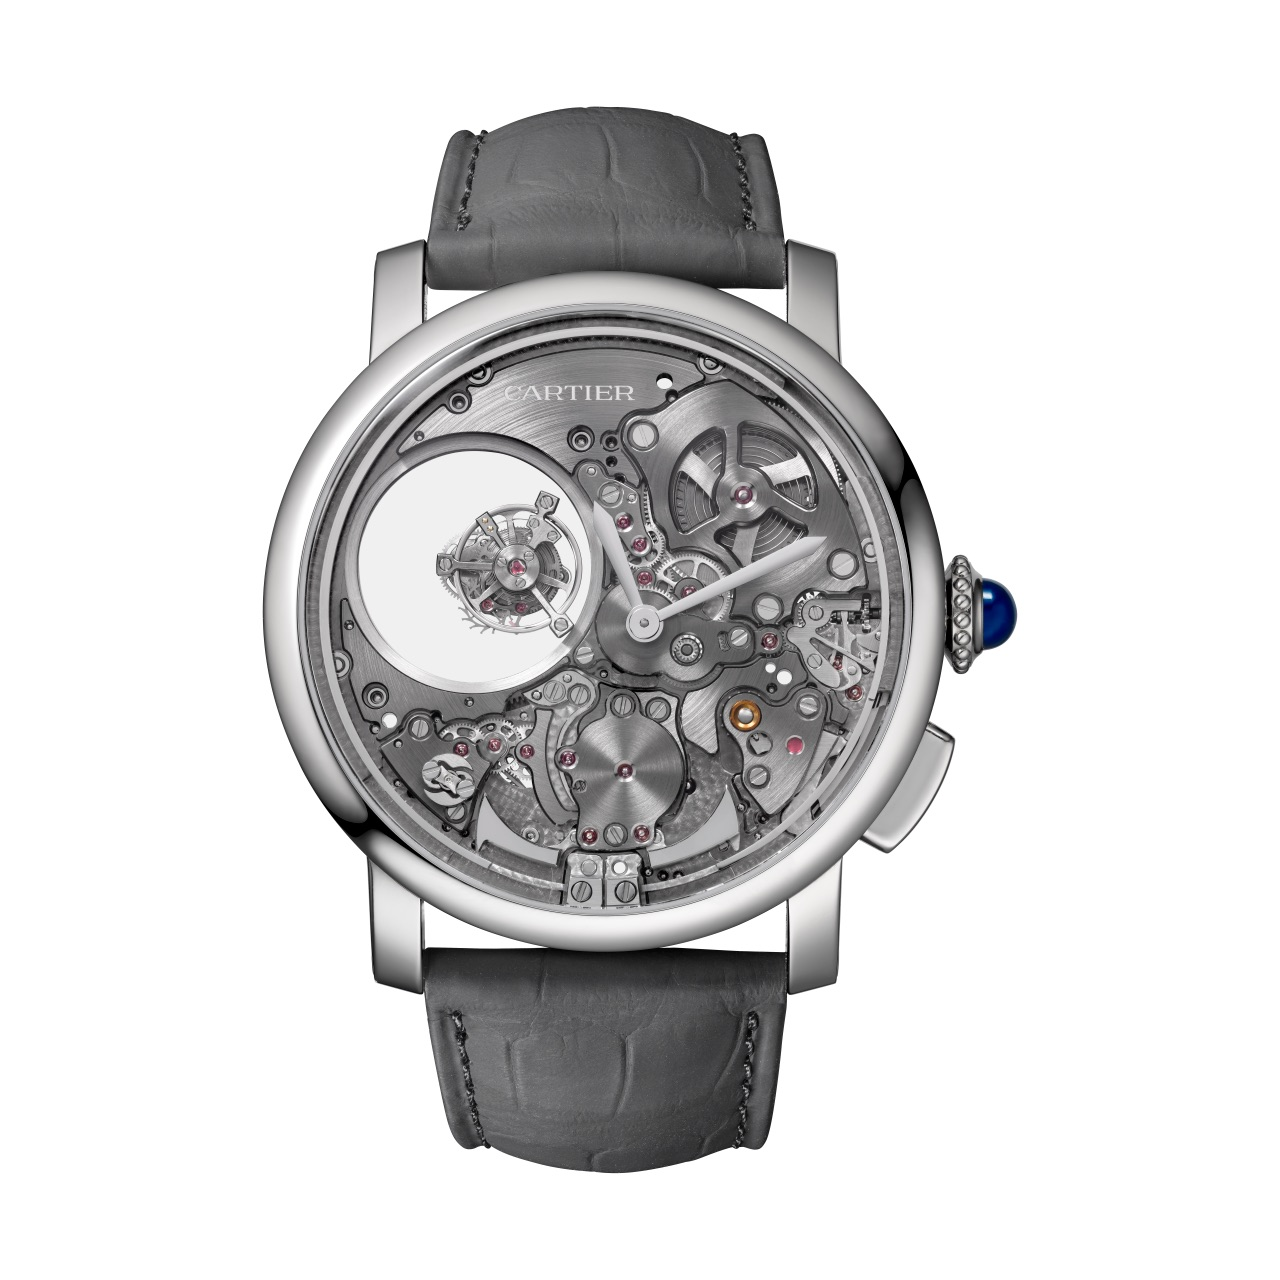 Rotonde de Cartier Minute Repeater Mysterious Double Tourbillon Calibre 9407 MC